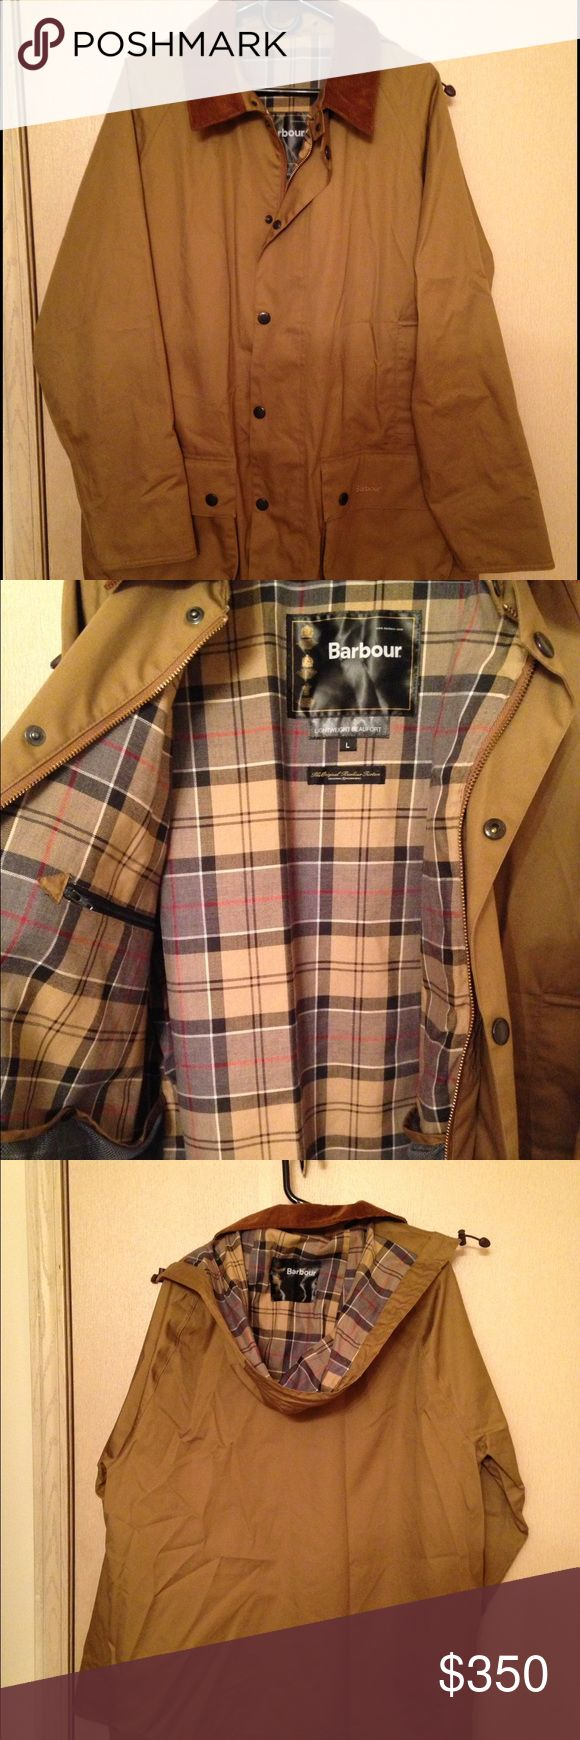 Barbour Beaufort Jacket This is a men's Barbour Lightweight Beaufort Jacket in a size Large with the hood. There are no flaws all zippers and snaps work. The jacket is just wrinkled from being stored. Barbour Jackets & Coats